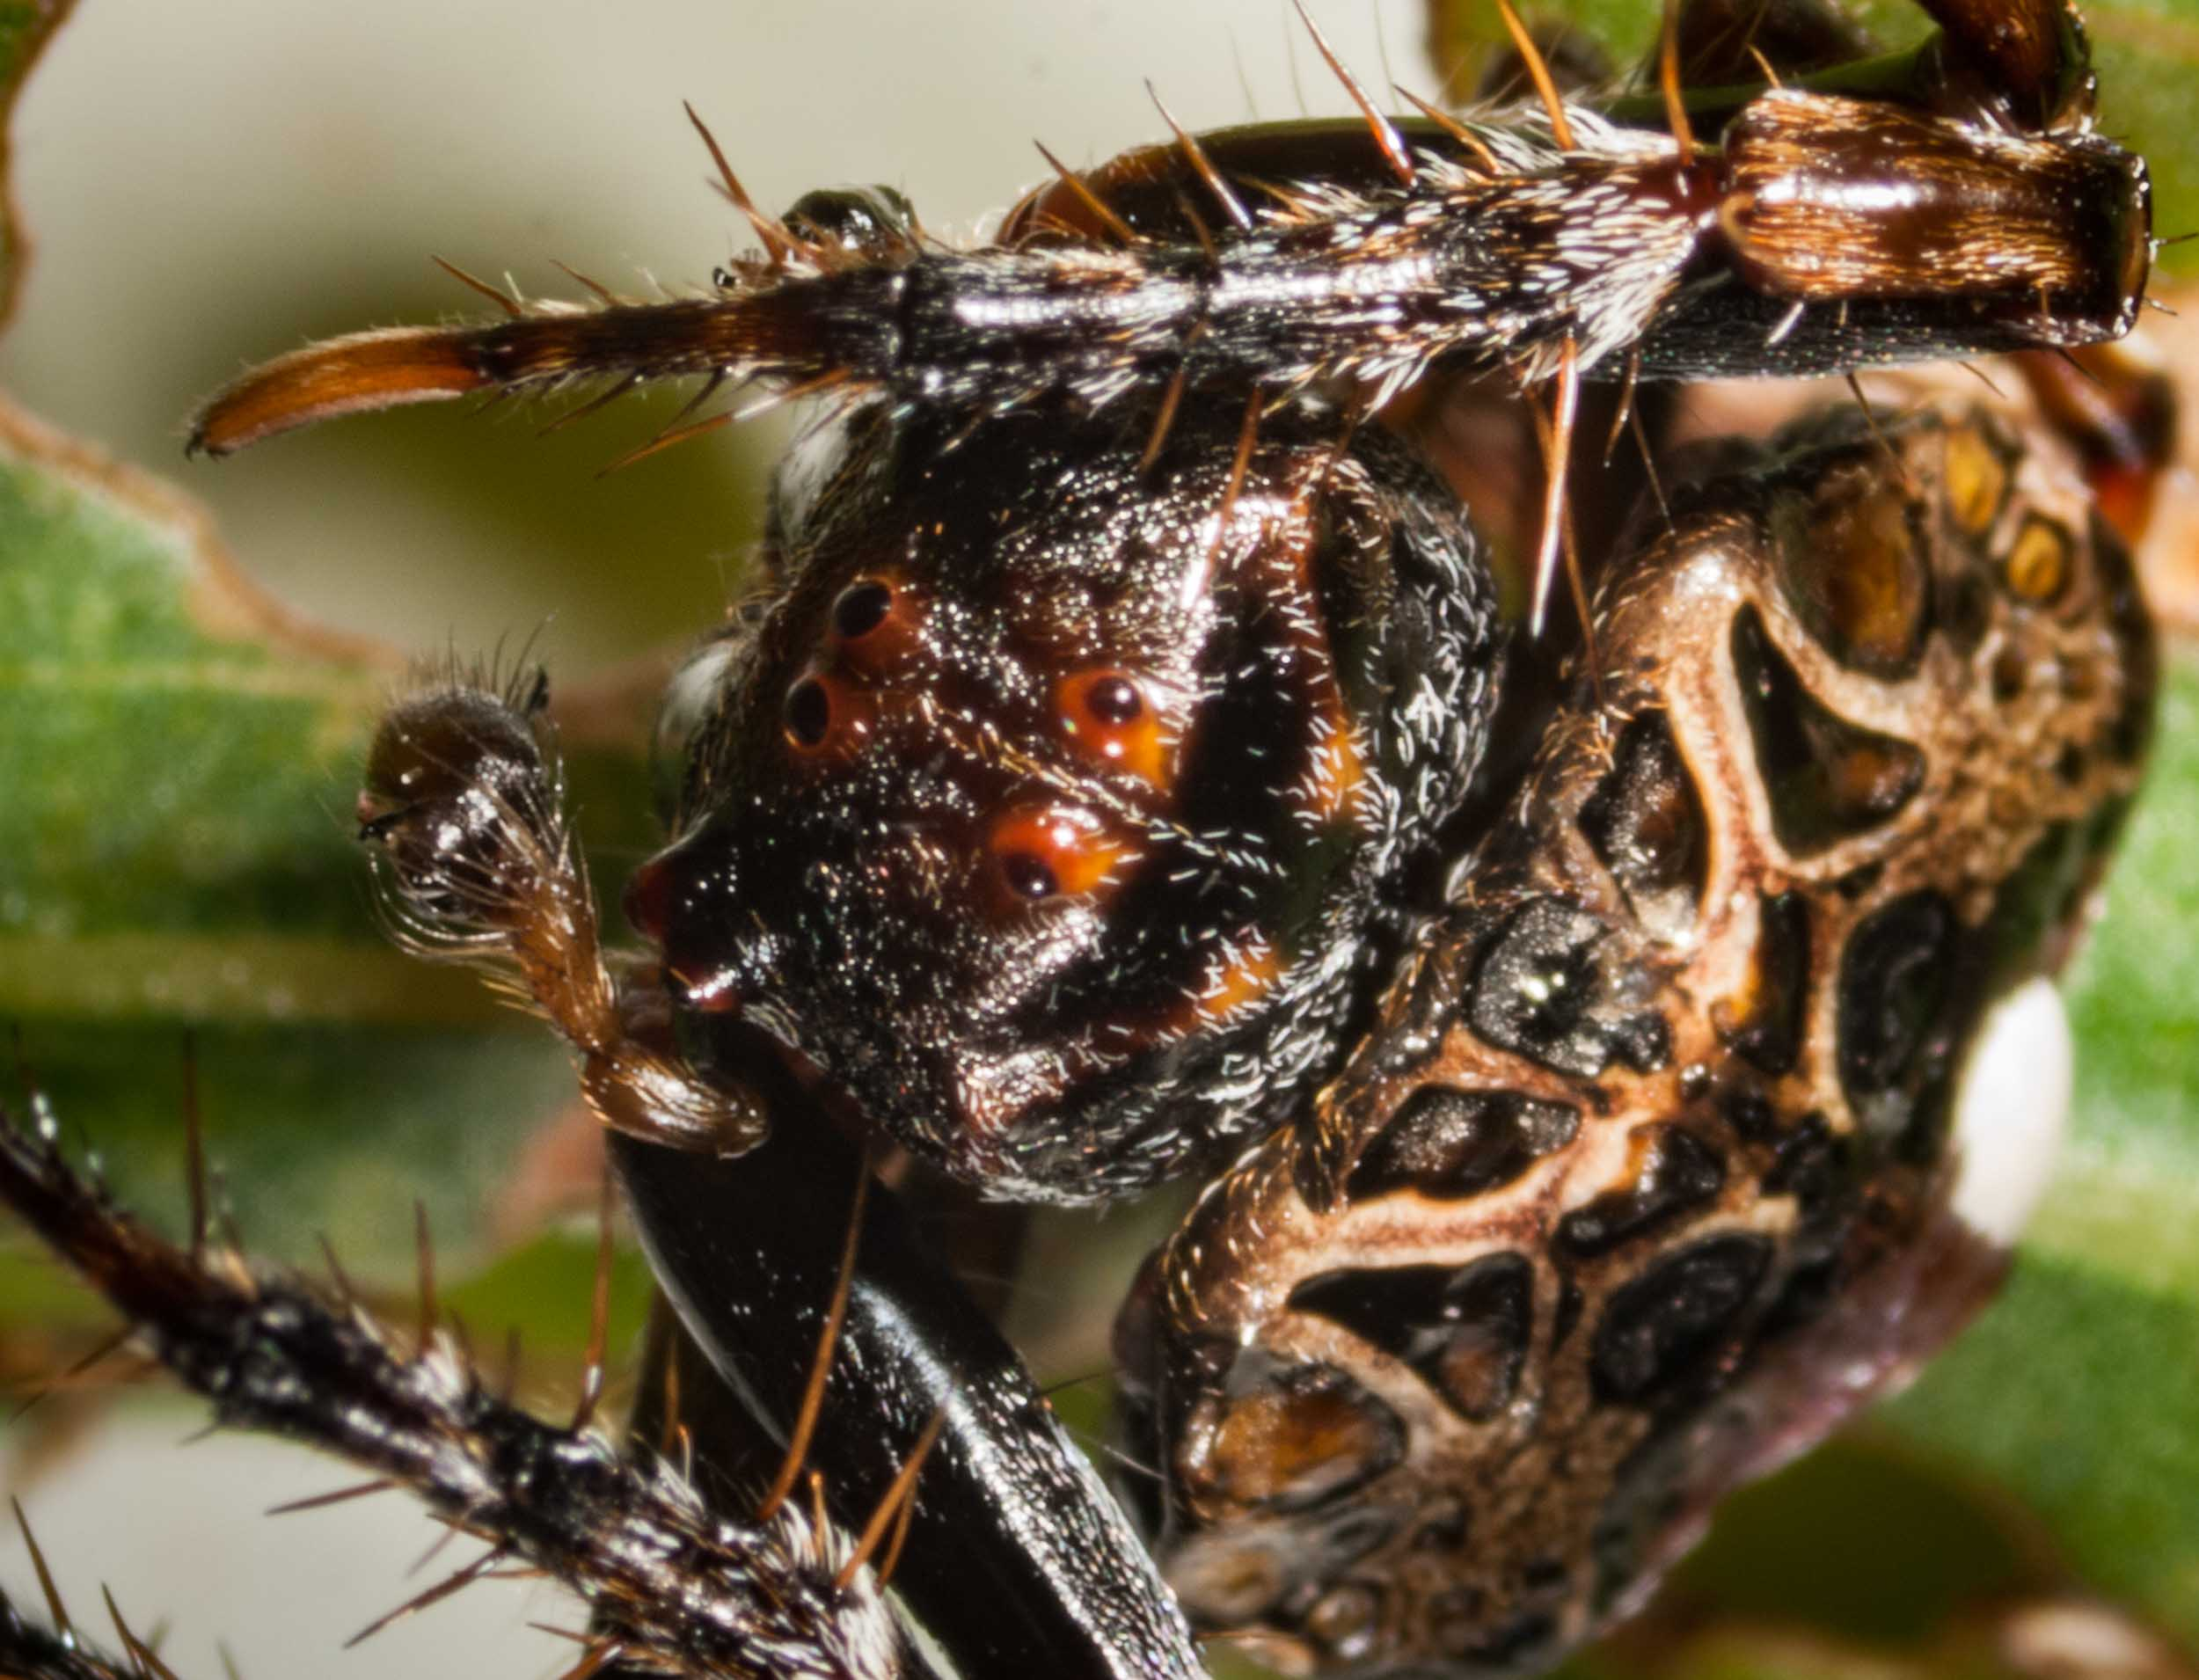 Swollen pedipalps - give away that this is a male!